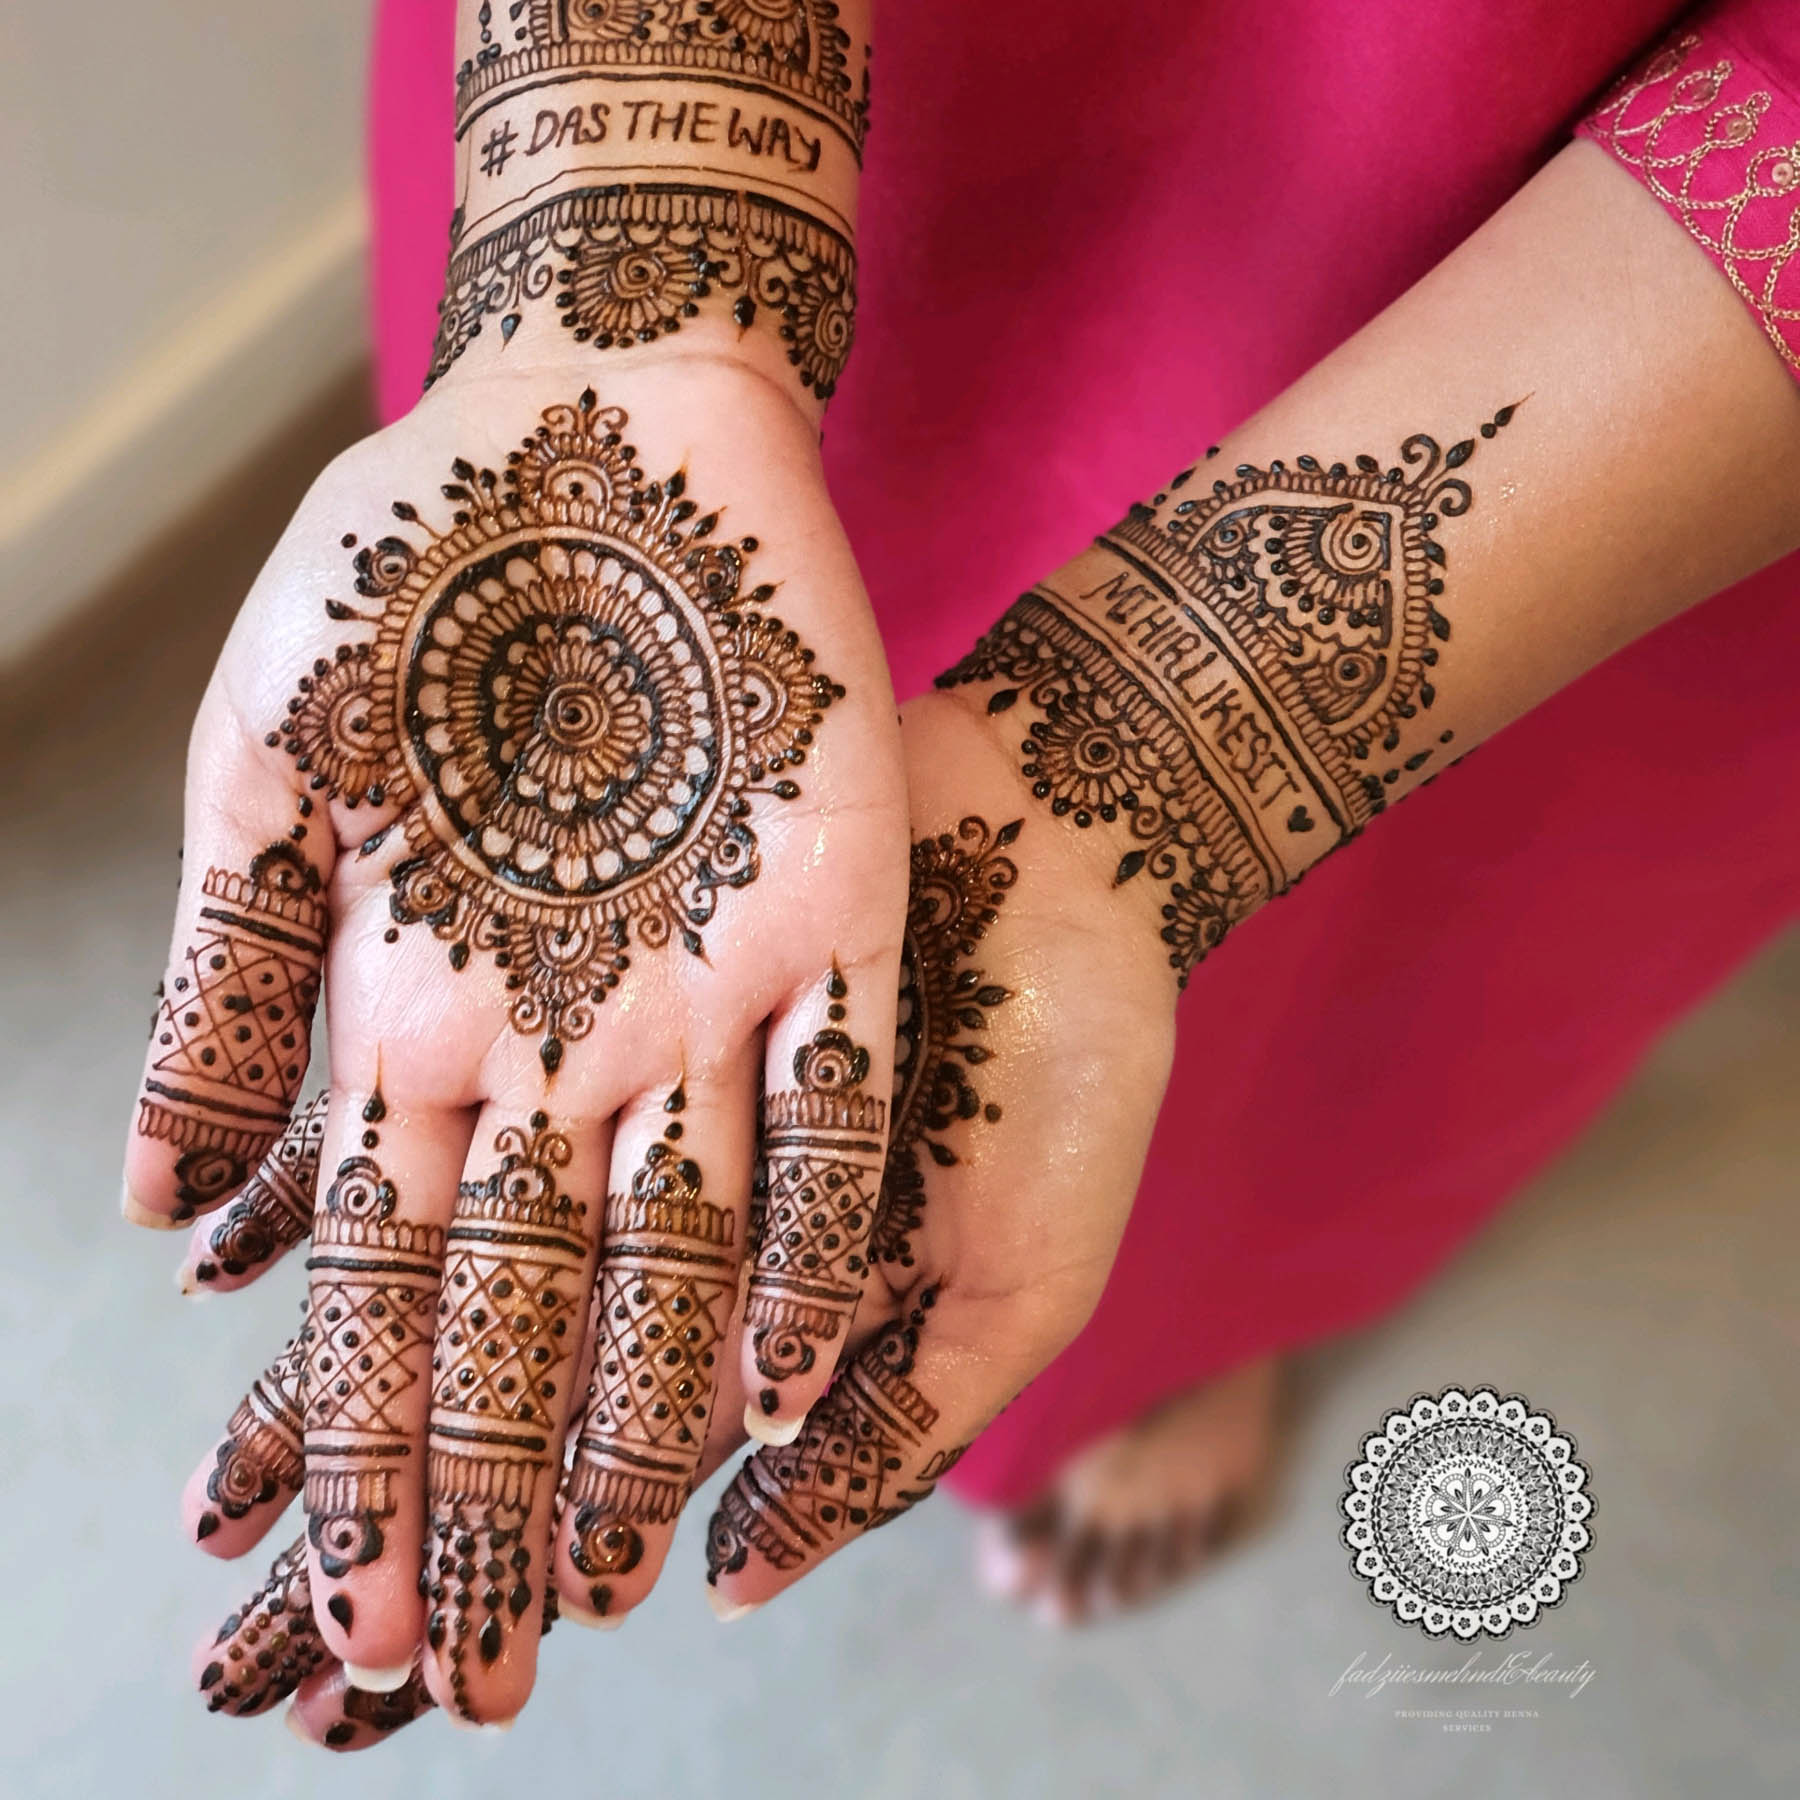 Introducing Melbourne Bridal Henna and Makeup Artist Faadhilah Buksh of Fadziies Mehndi And Beauty. Fadziie is an experienced mehndi artist who is open to travelling all across Australia for Indian weddings.